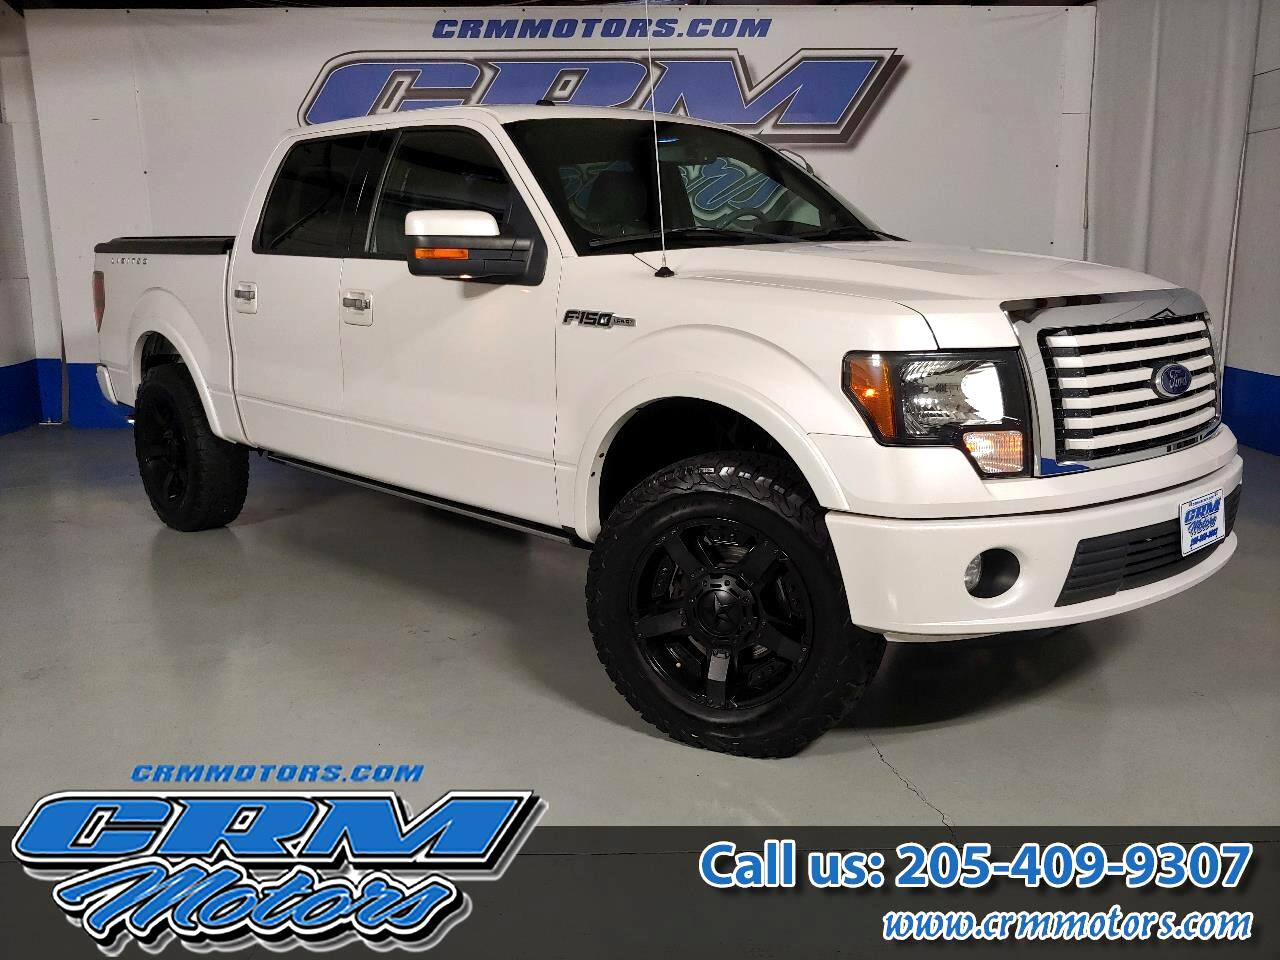 2011 Ford F-150 4WD SUPERCREW LIMITED LARIAT - LIFTED